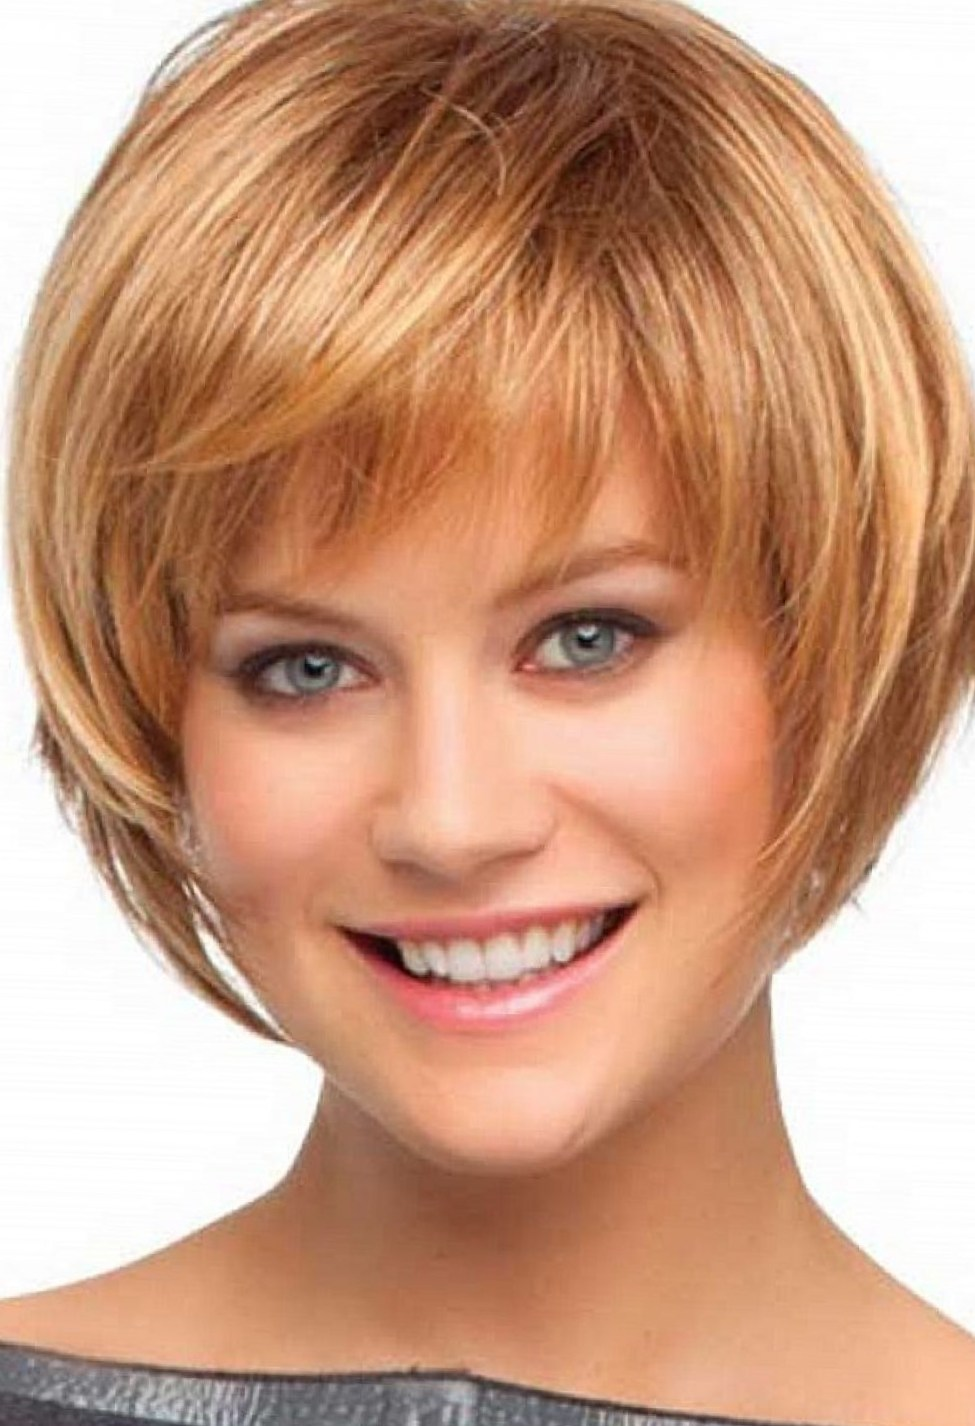 Outstanding Short Bob Hairstyles With Bangs 4 Perfect Ideas For You Talk Hairstyle Inspiration Daily Dogsangcom